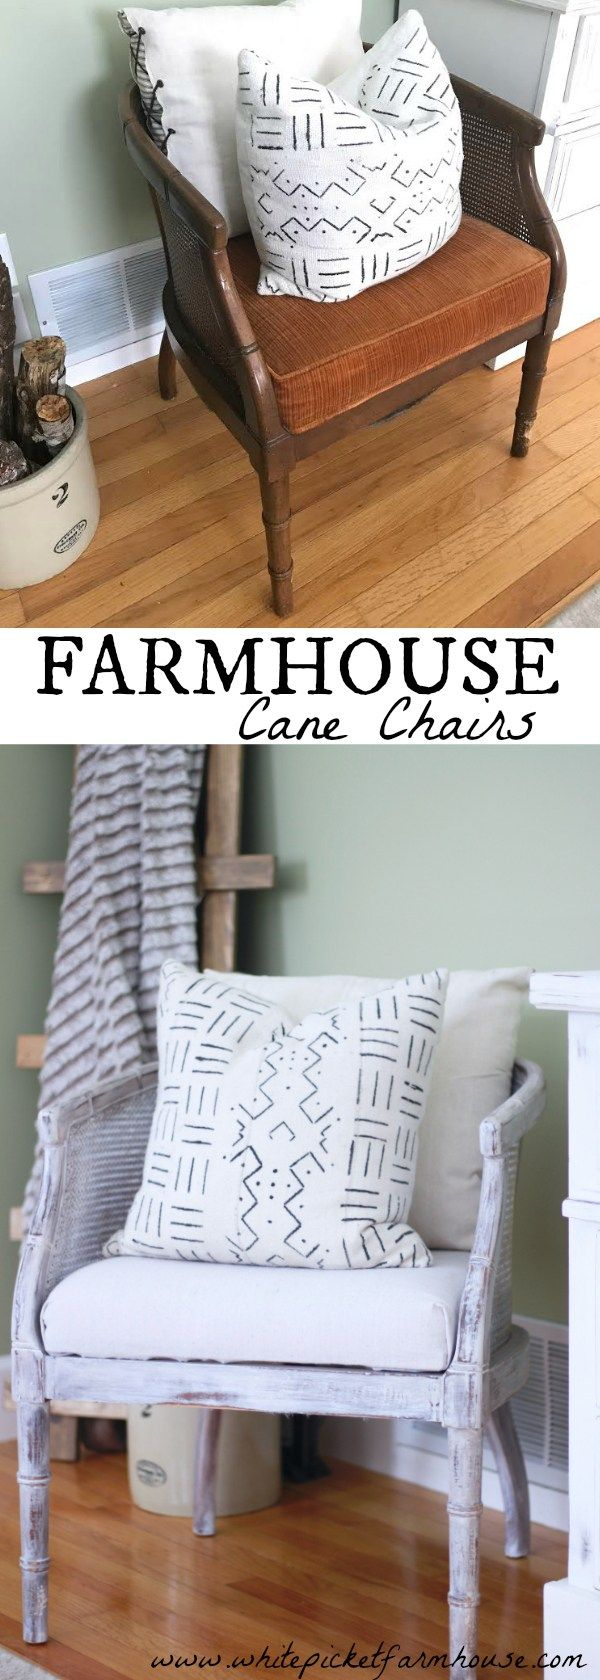 DIY Cane Chairs, How to Reupholster and refinish them easily, Farmhouse Cane Chairs On…